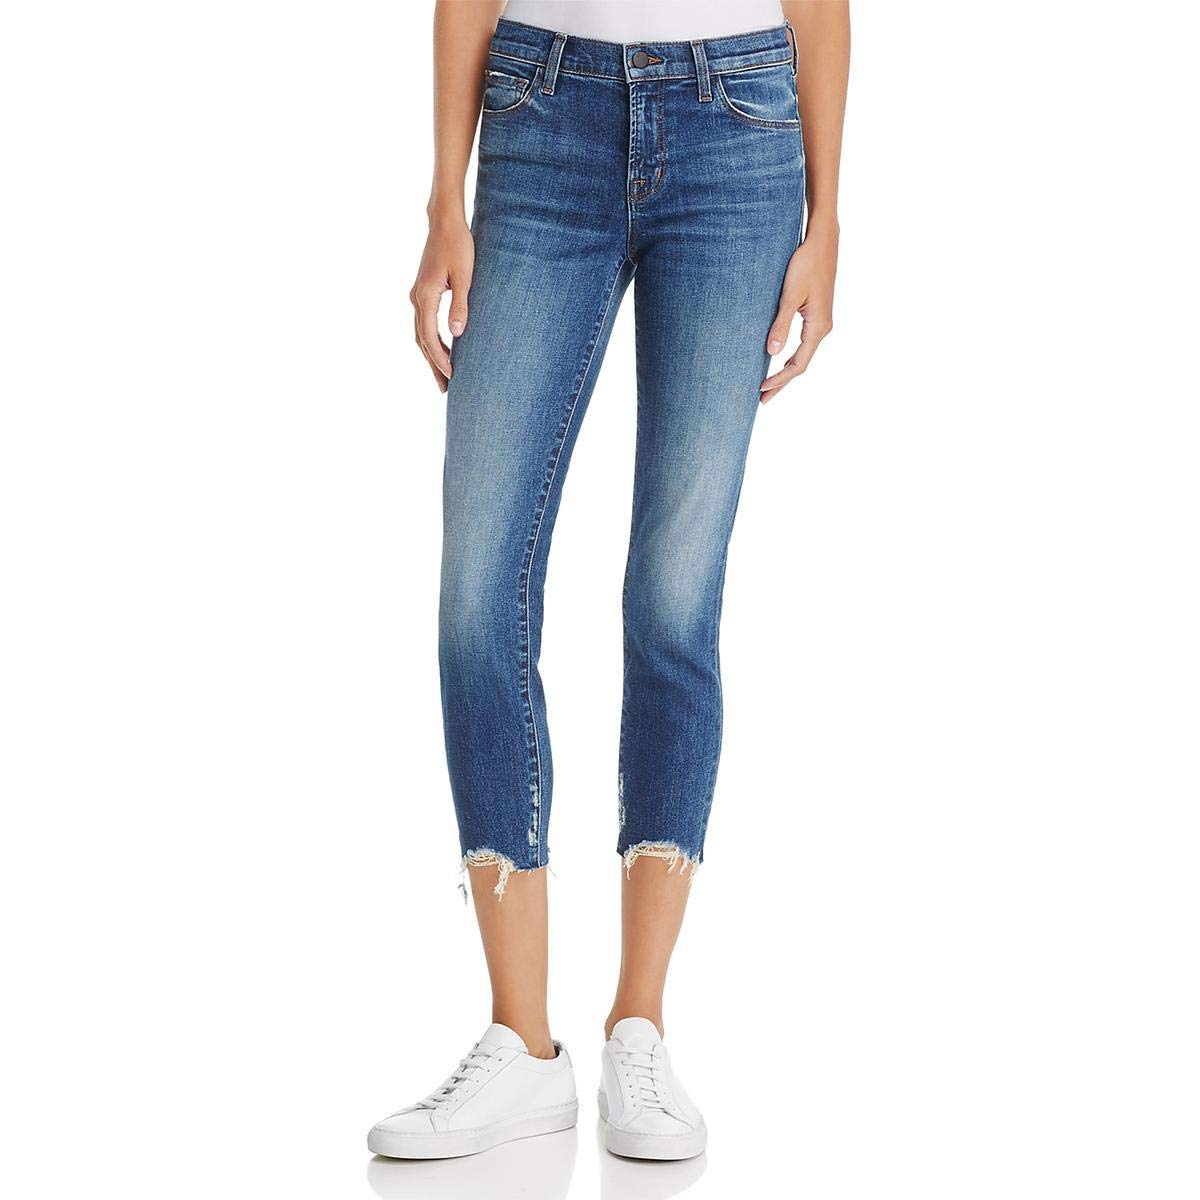 bluee J Brand Womens Skinny Cropped Cropped Jeans